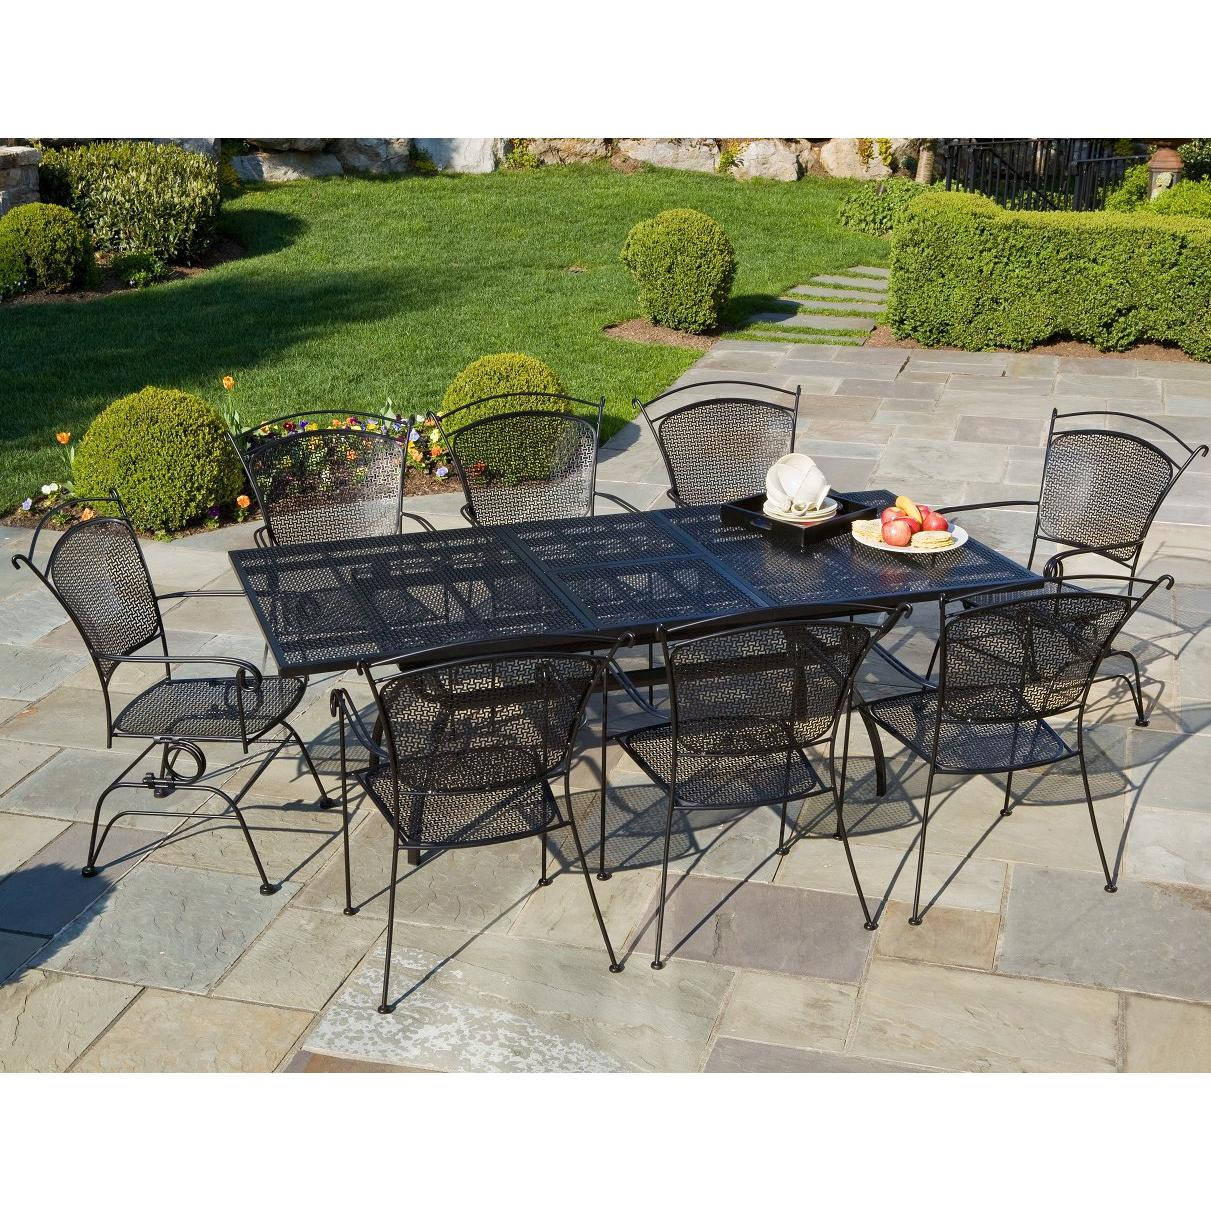 Overstock Outdoor Furniture | Cheap Patio Sets | Overstock Furniture Outlet